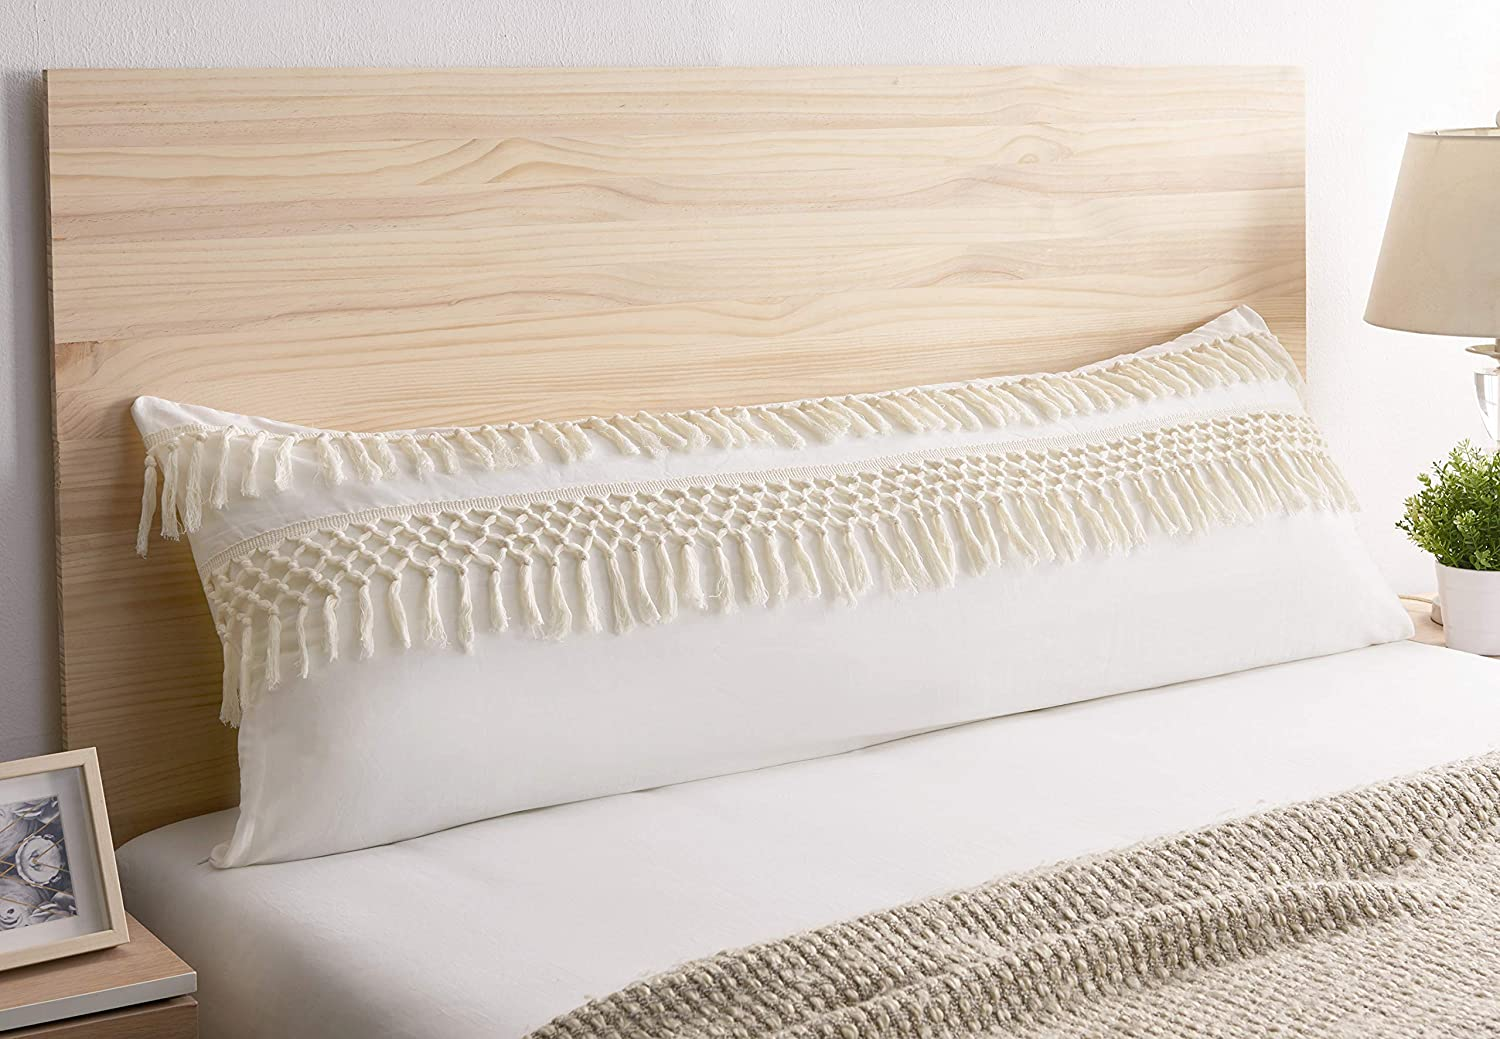 Boho Bohemian Macrame Tassel Ivory accent decorative couch long throw zipper body pillow cover case 54x20 Off White Cream Beige Cotton Fringe Knit Luxury Farmhouse Textured Rustic Tufted Room Decor